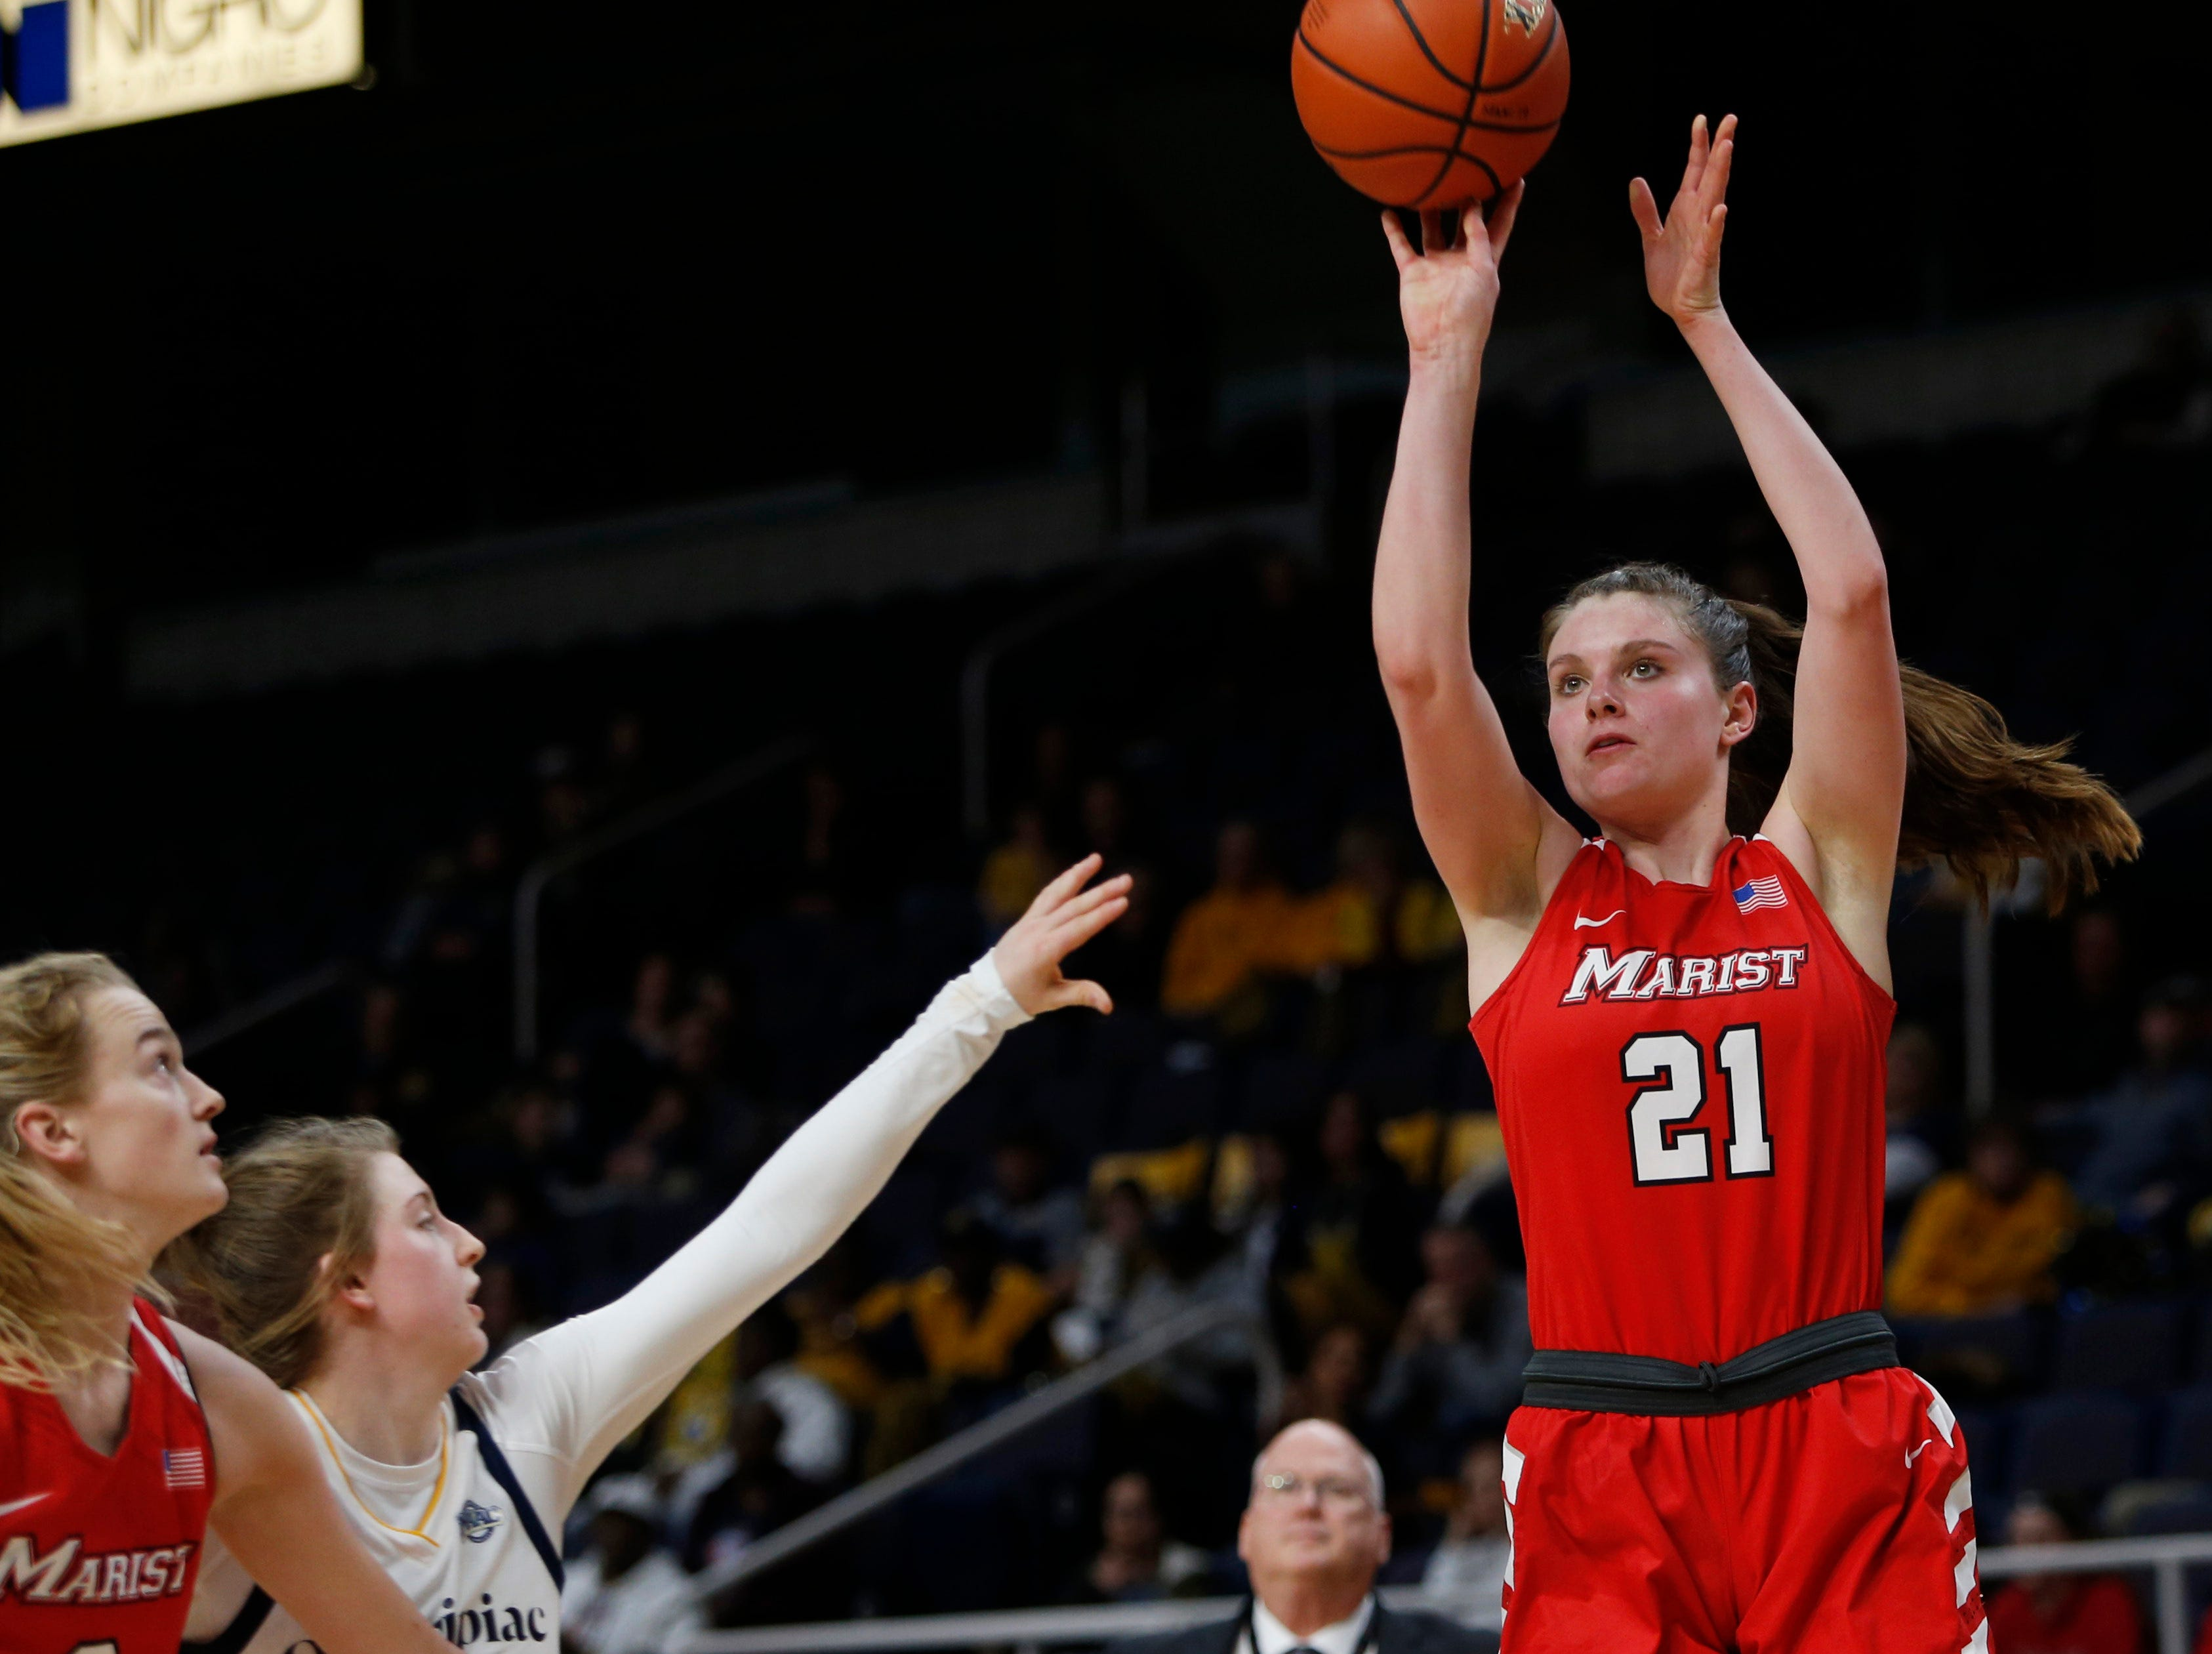 Marist's Willow Duffell takes a jump shot during the MAAC championship versus Quinnipiac in Albany on March 11 2019.